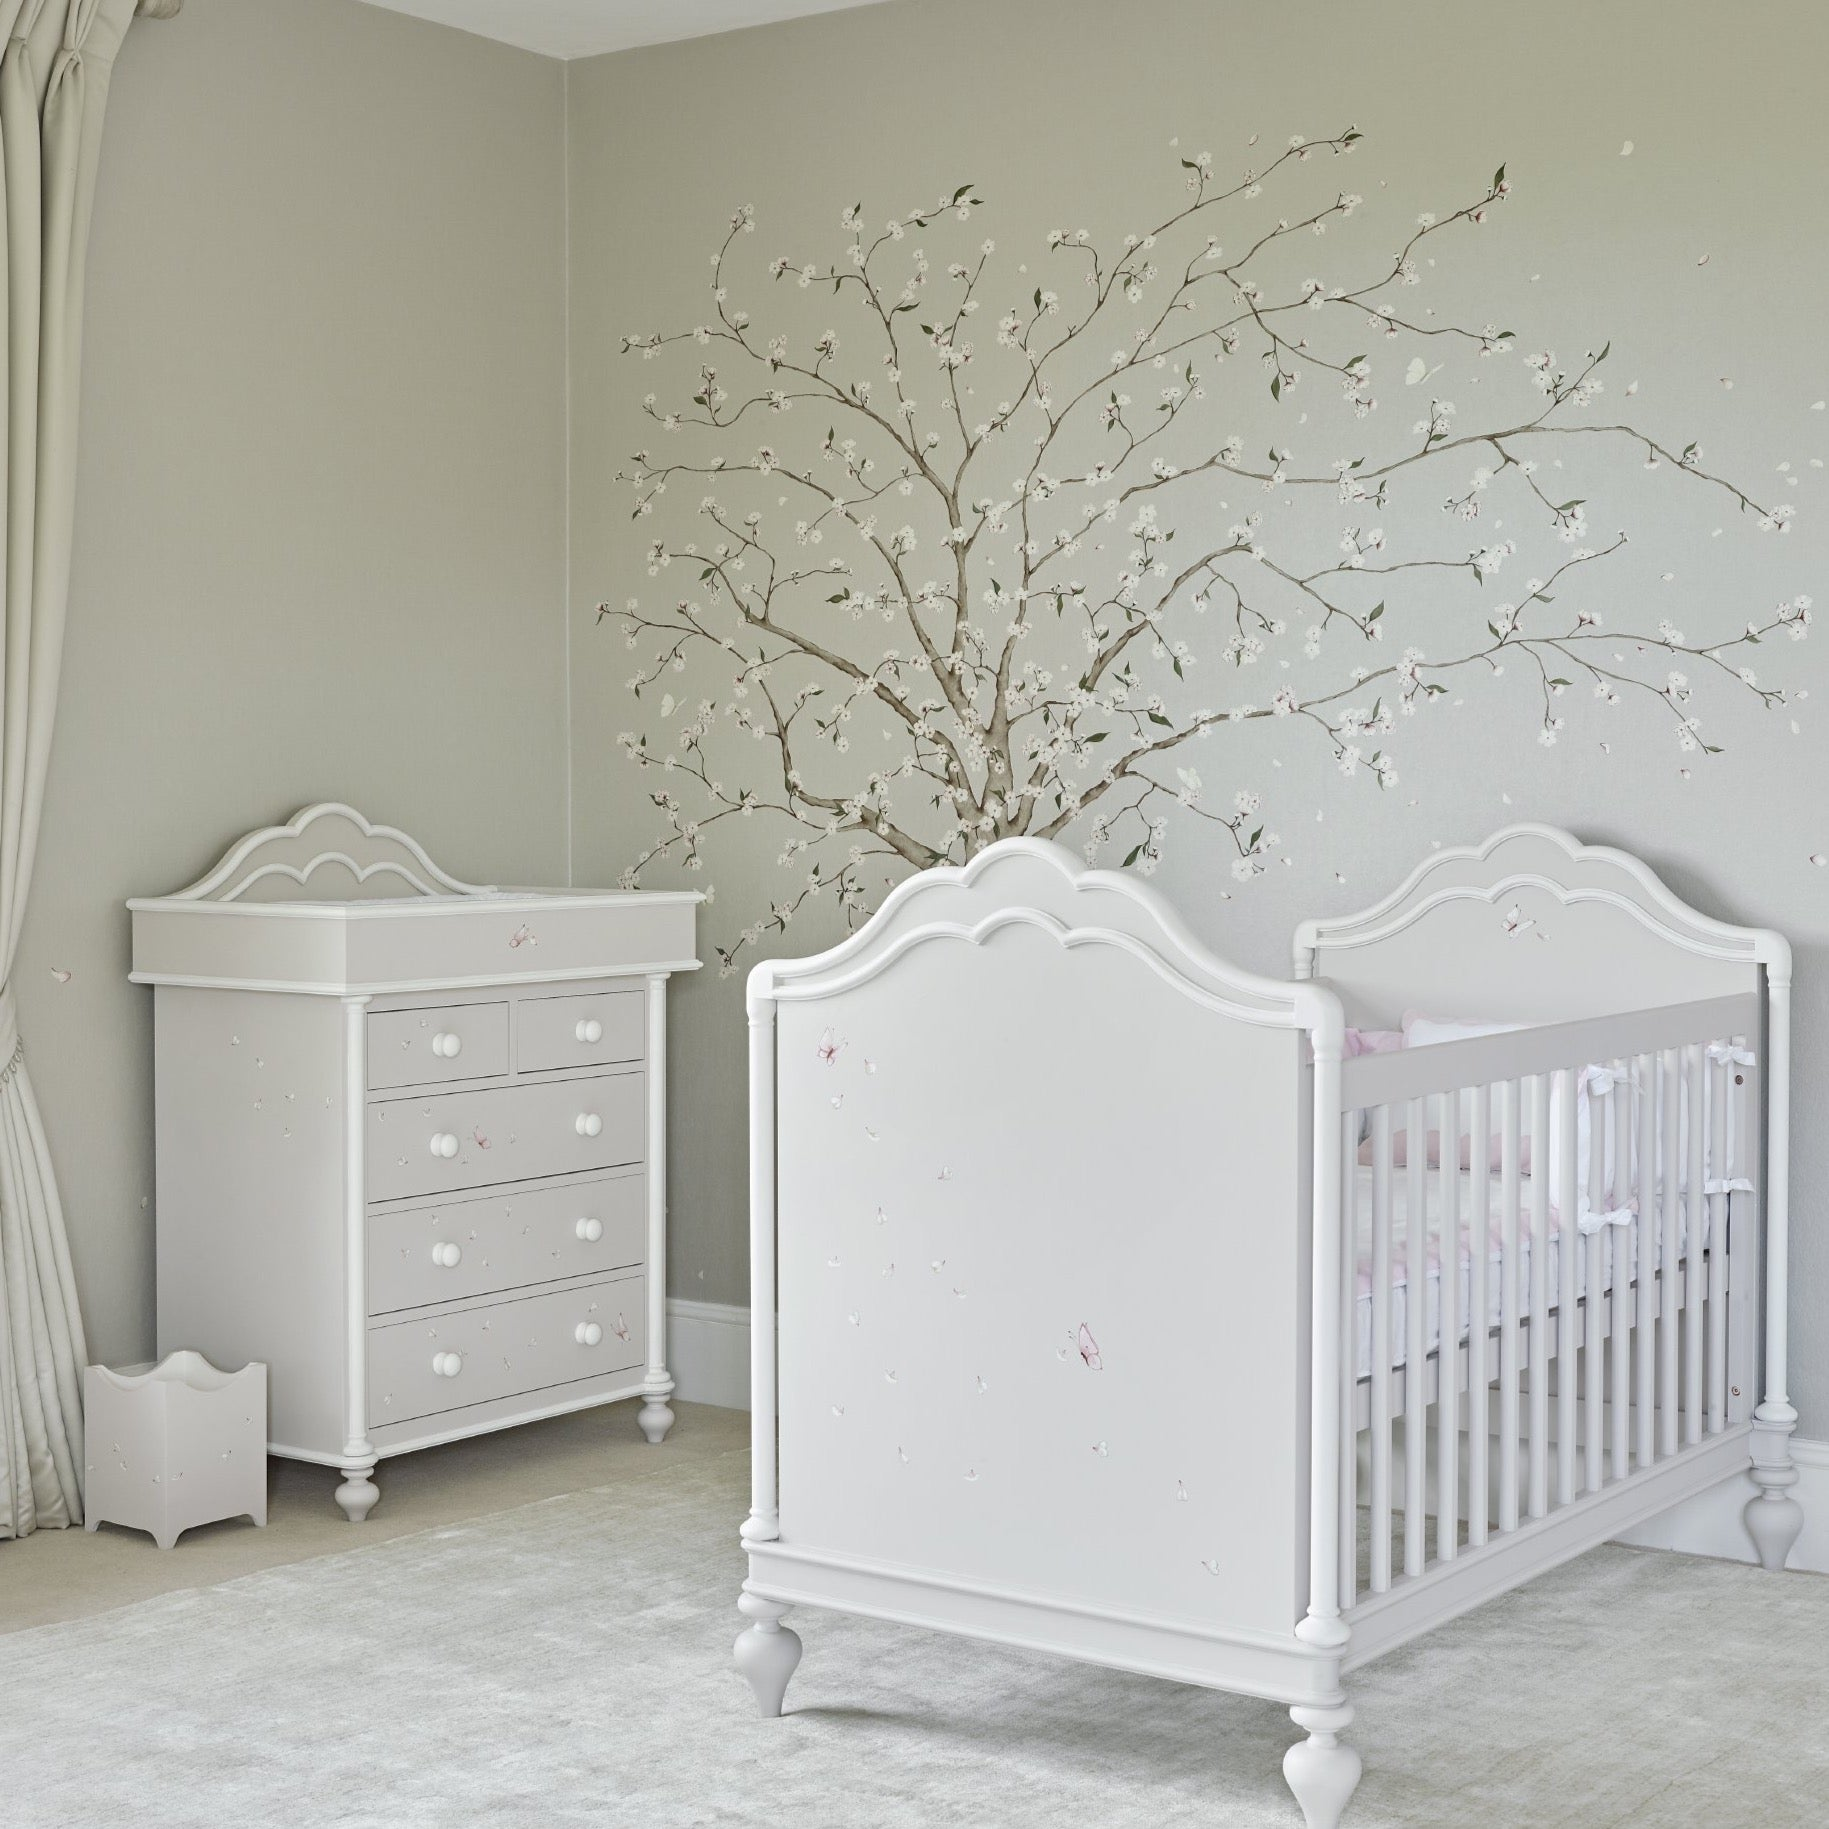 Baby cot with changng table for girl's nursery room   Dragons of Walton Street